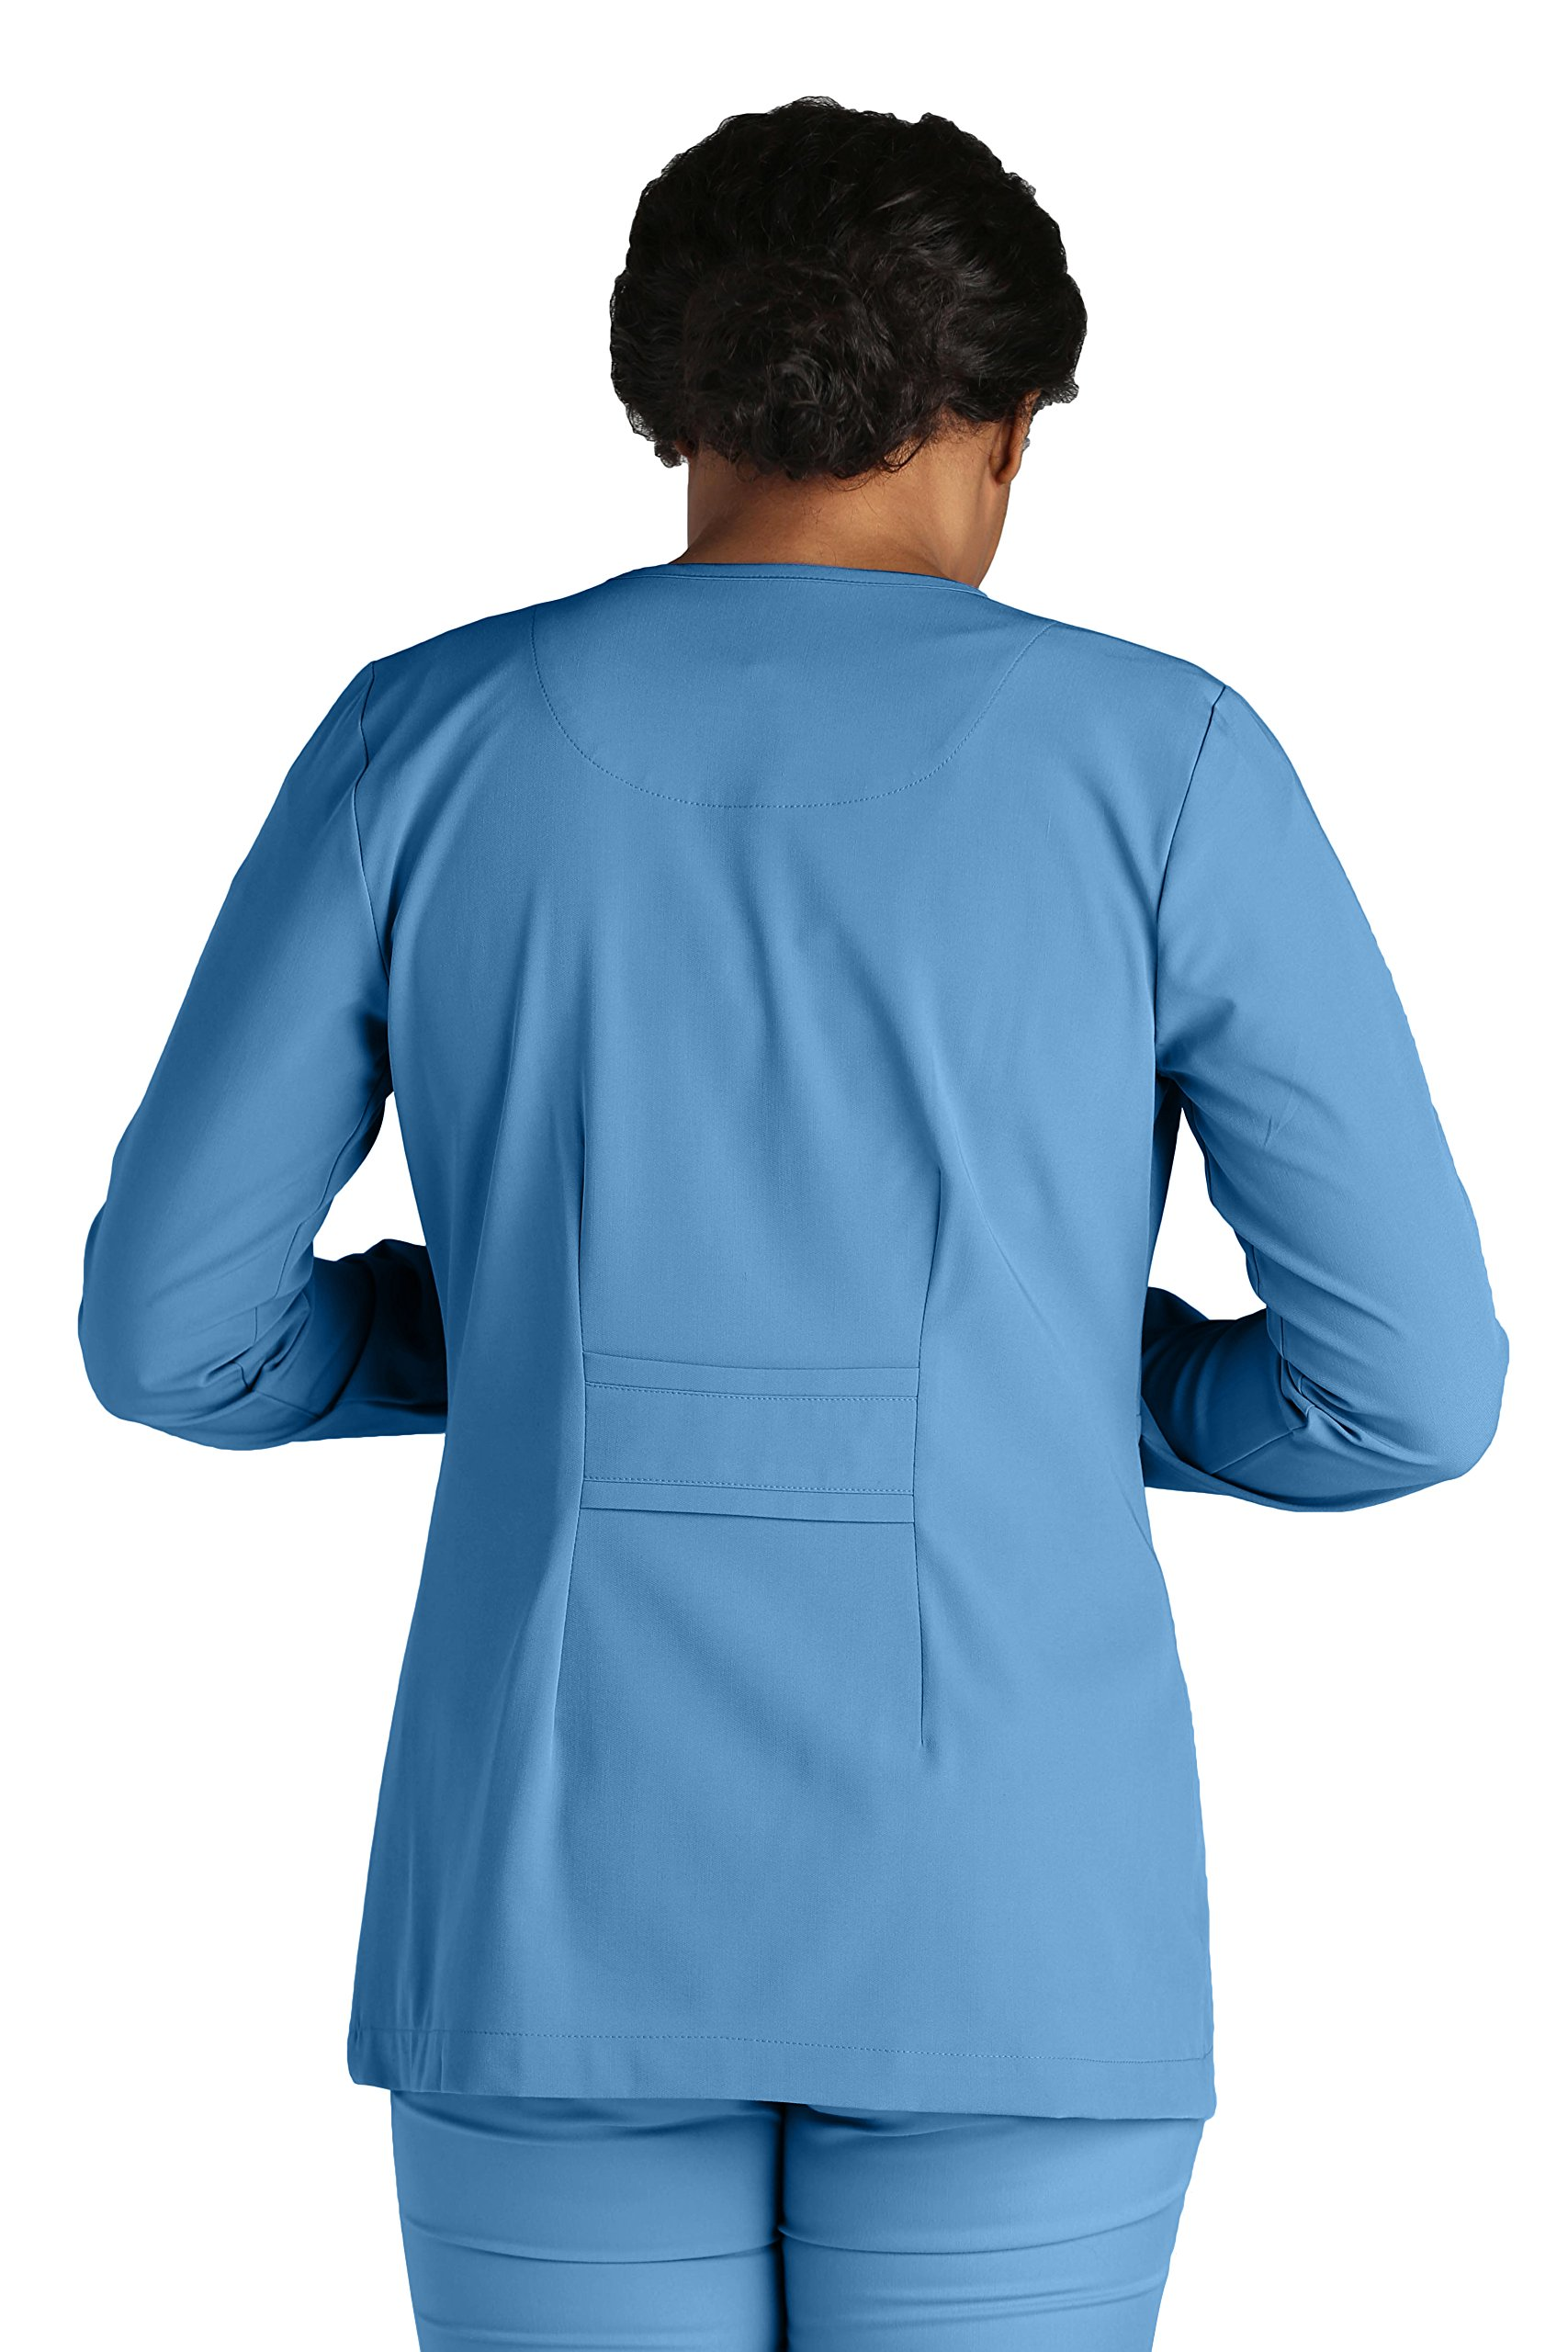 Grey's Anatomy Signature 2407 Warm-up Ciel Blue S by Barco (Image #2)